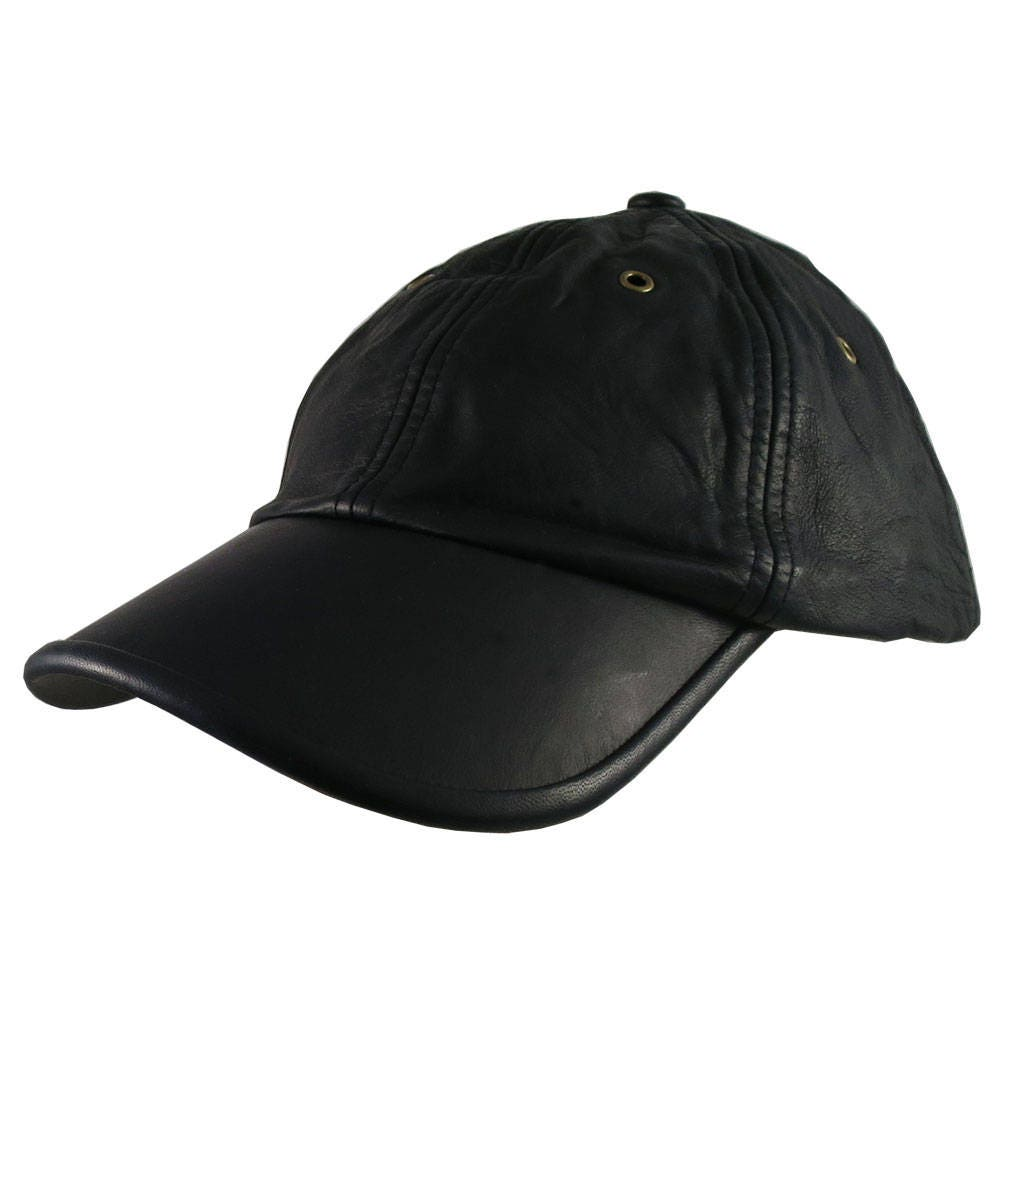 e47df5042f8 Genuine Black Leather Low Profile Adjustable Fashion Baseball Cap Dad Hat  Made in Canada